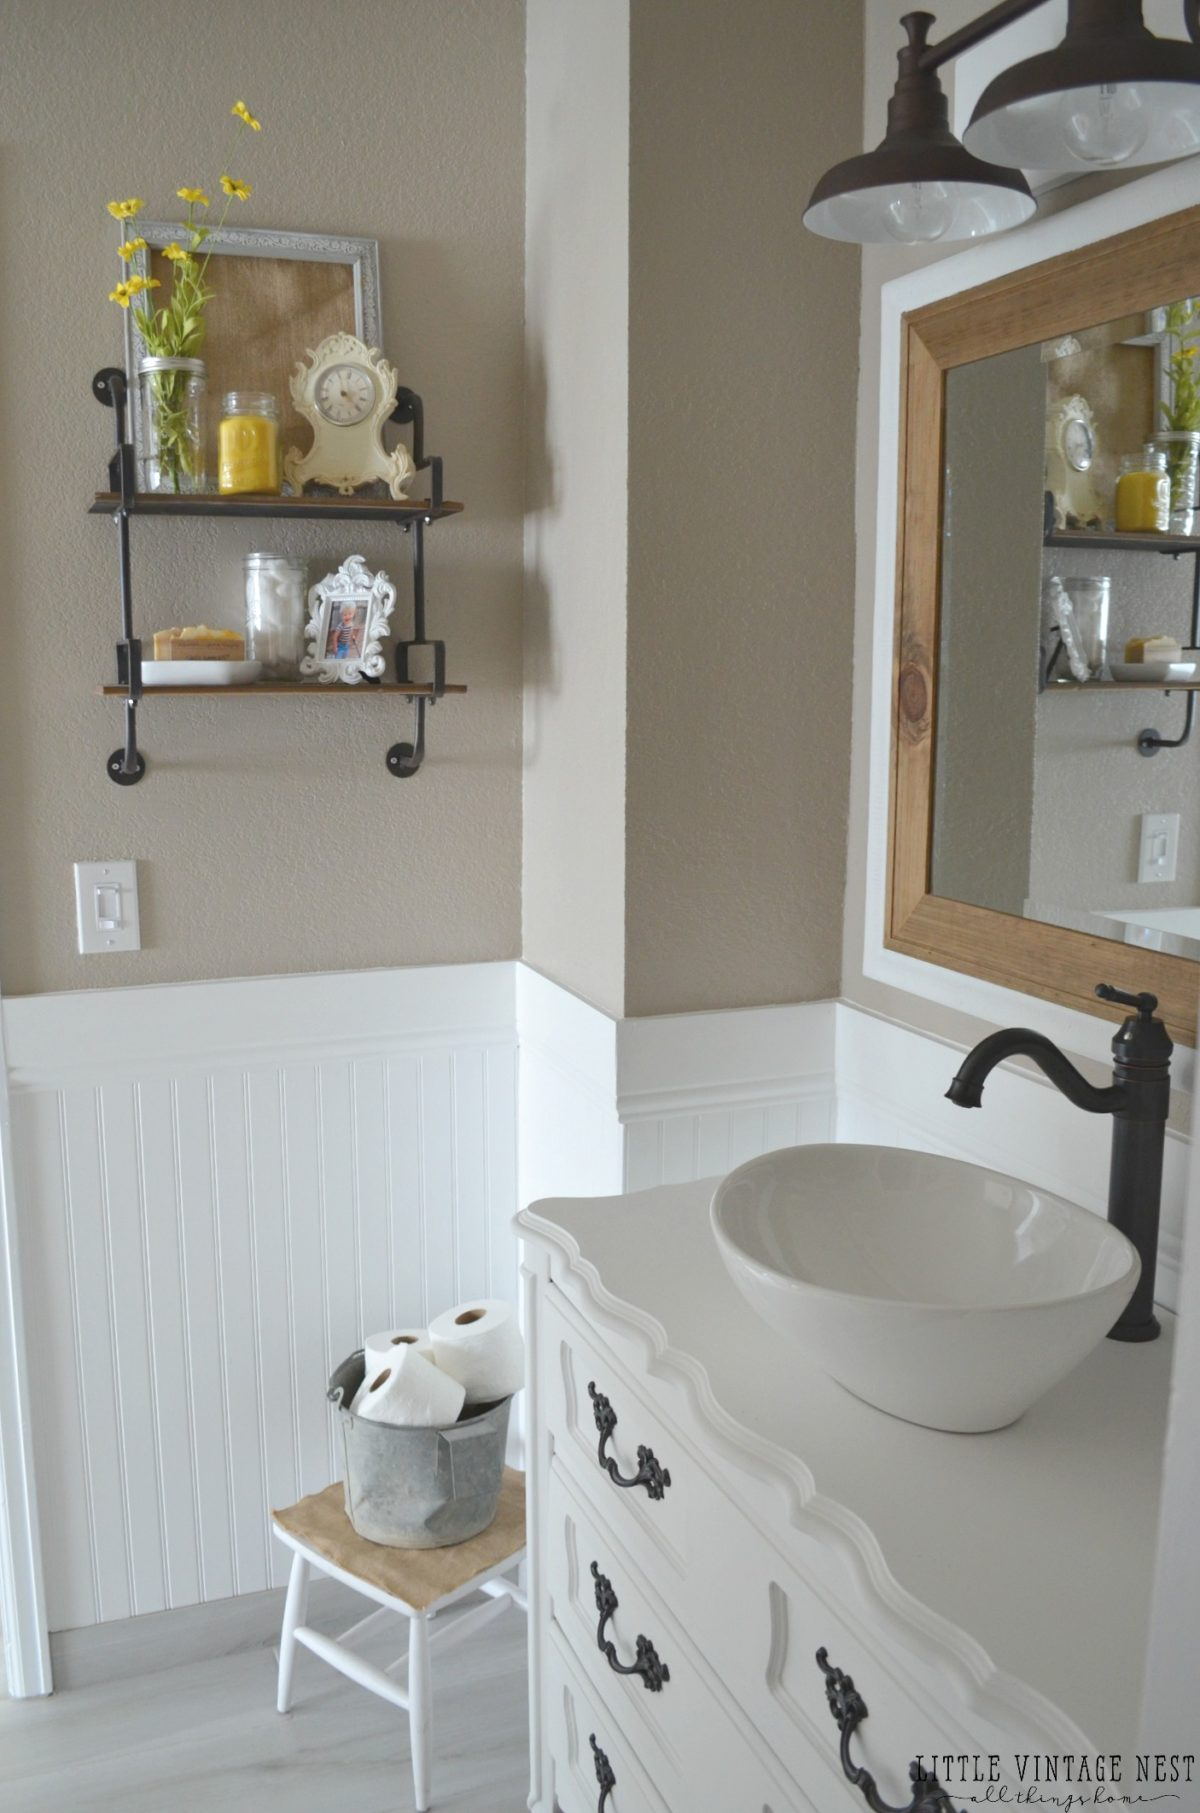 Farmhouse Master Bathroom Reveal - Little Vintage Nest